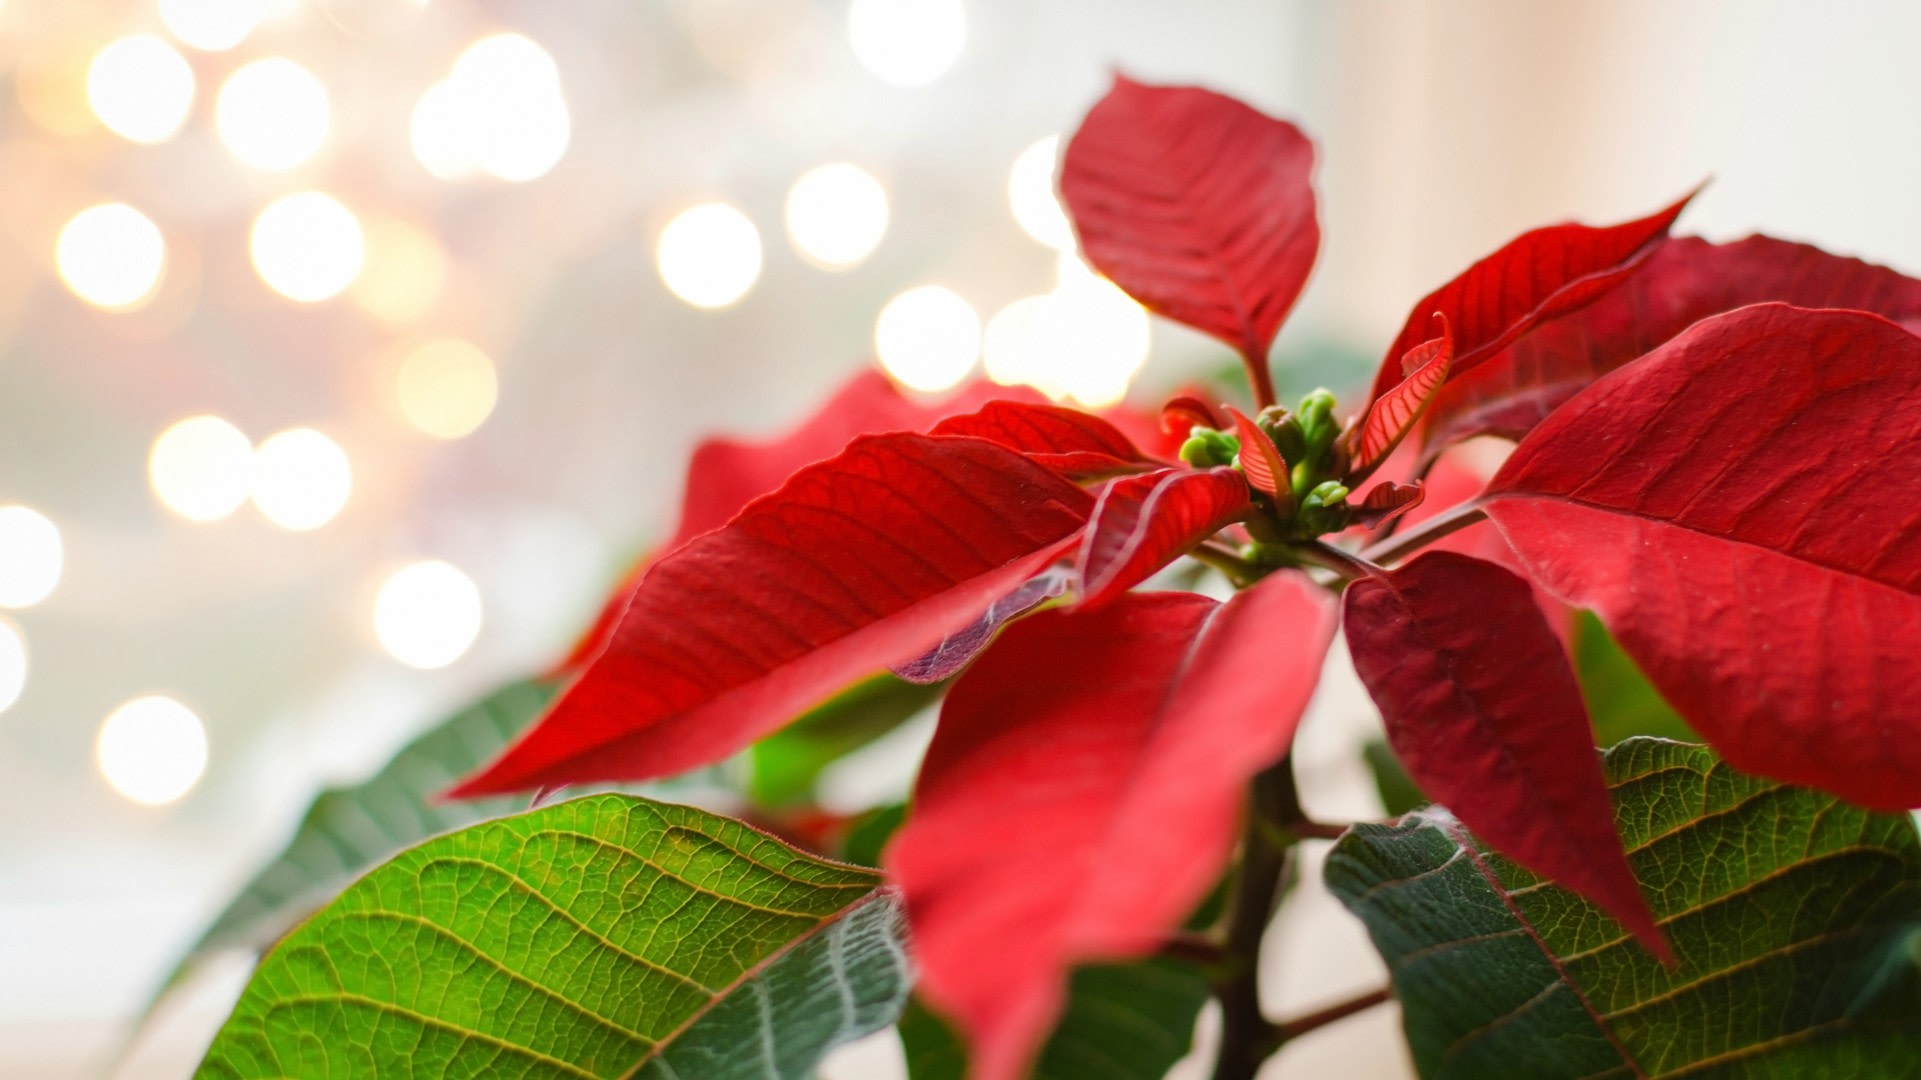 How To Keep Your Poinsettia Plant Image Nut Natti Getty Images